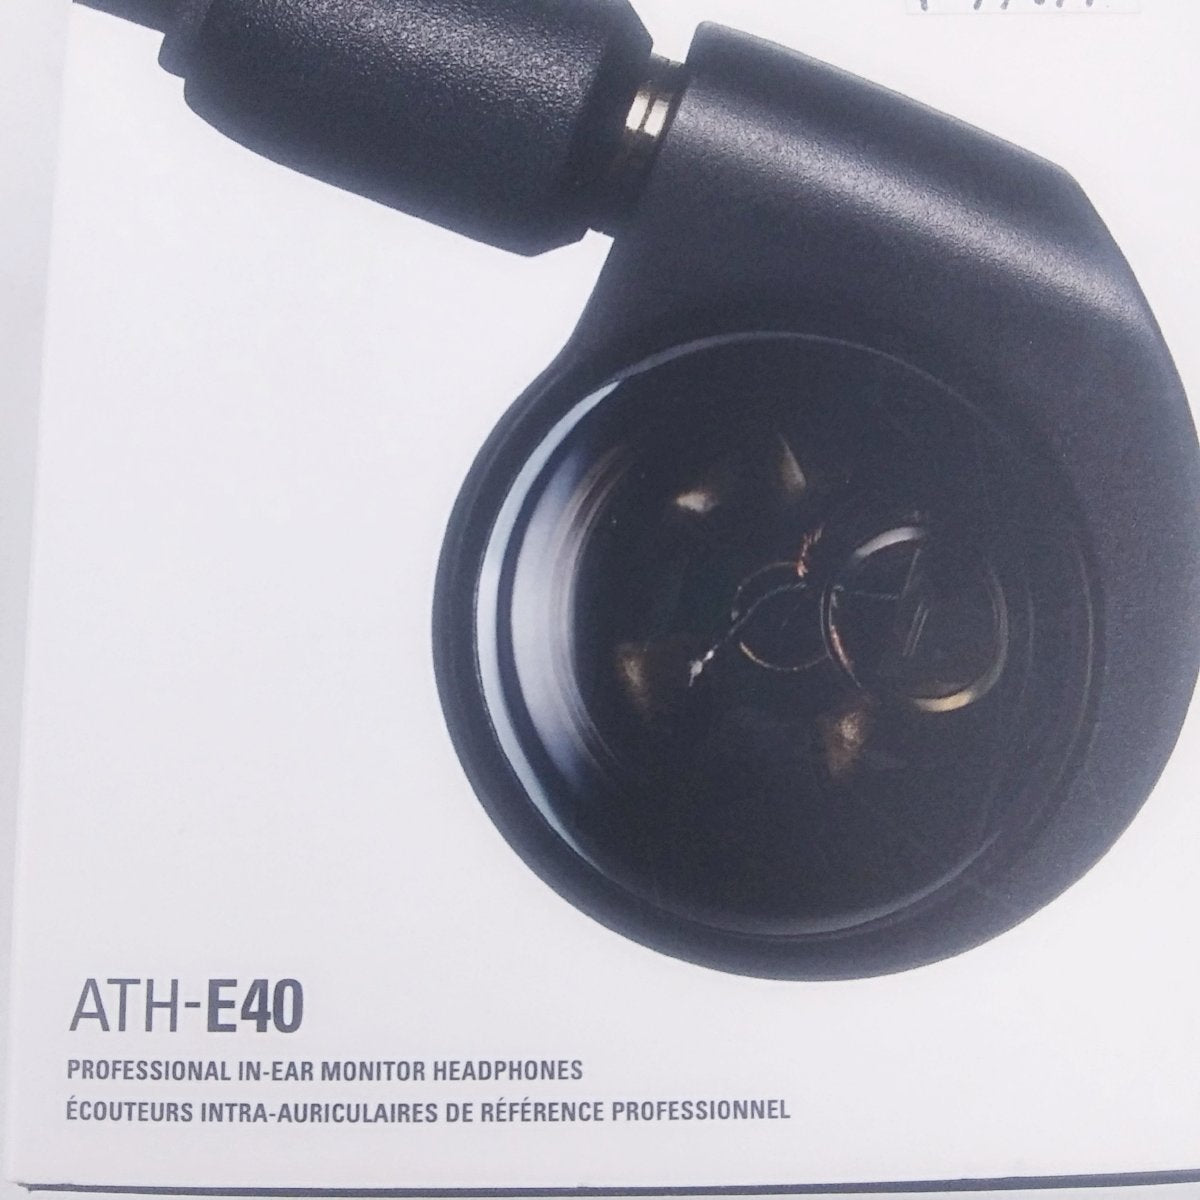 ATH-E40 In-Ear Monitor Headphones